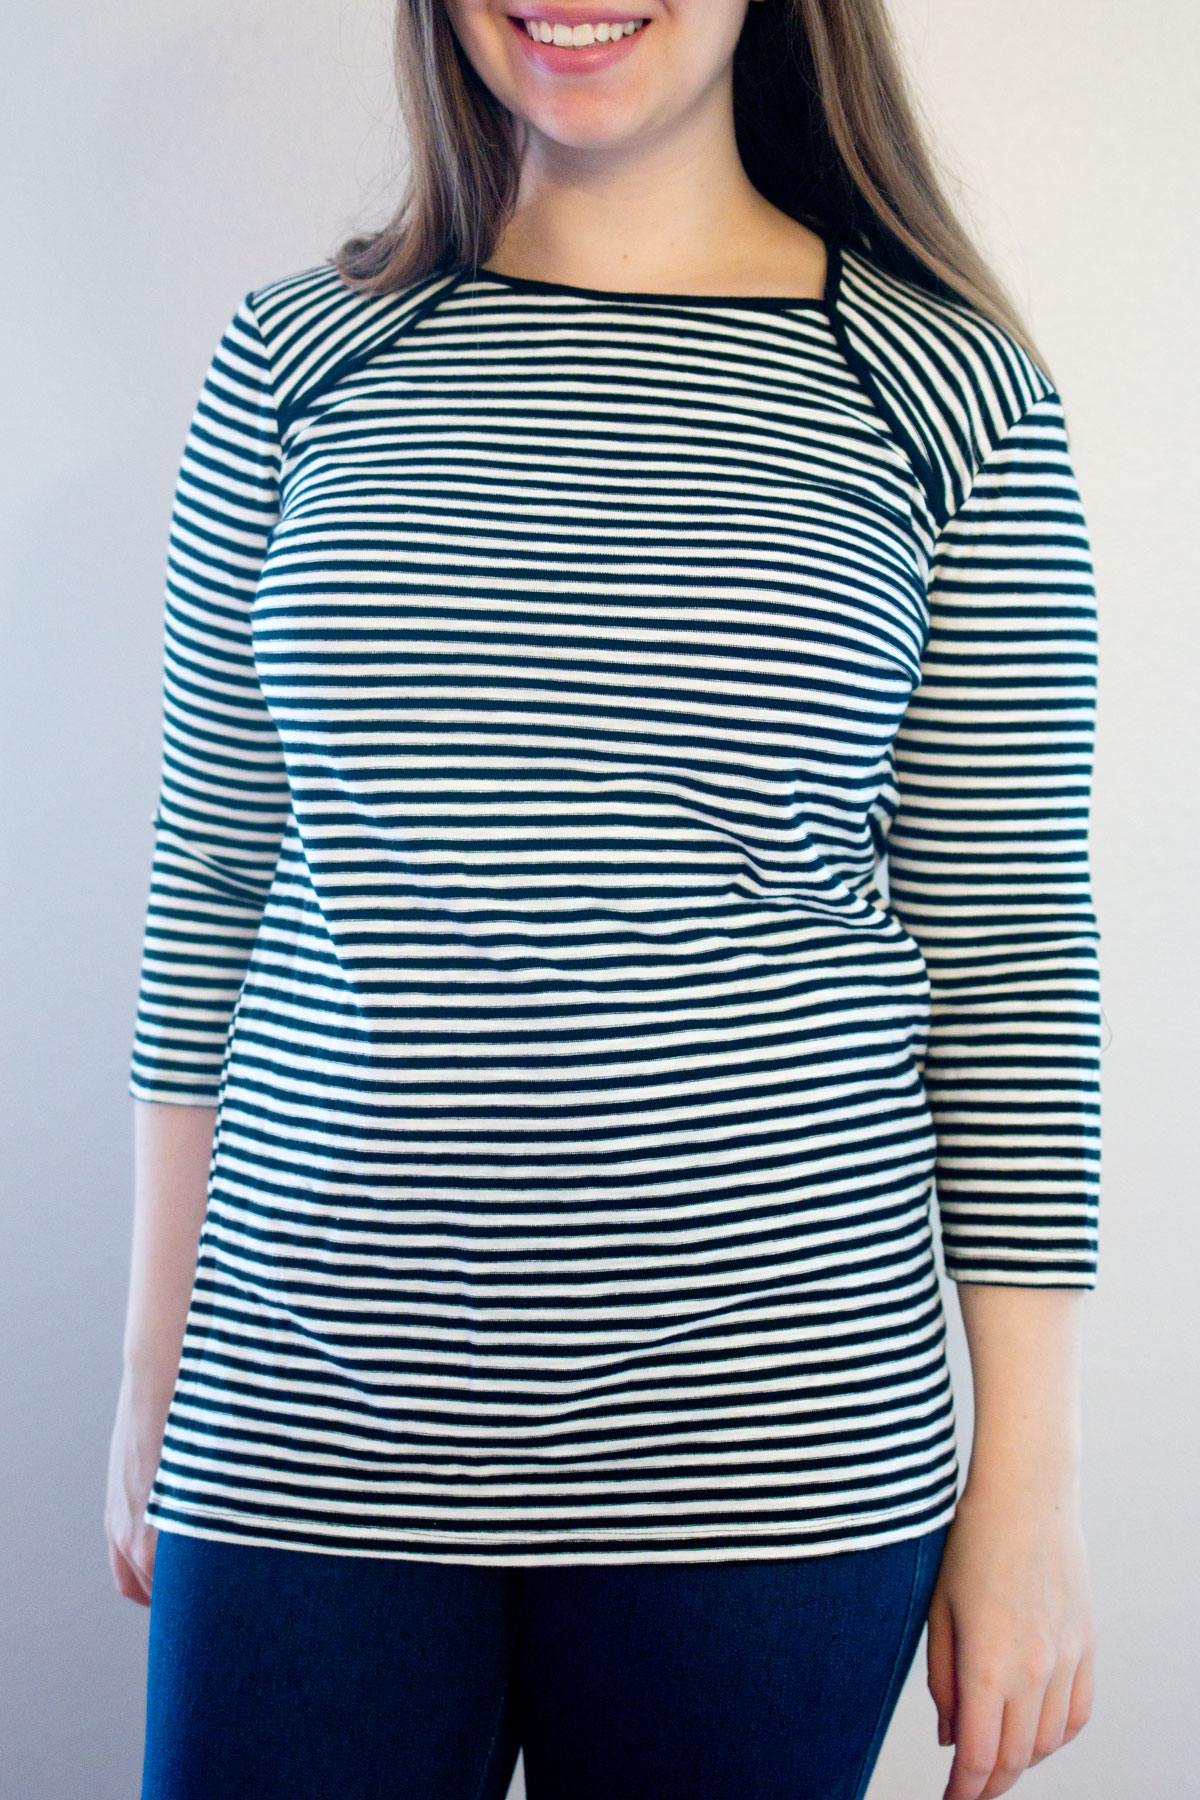 Target Who What Wear Bateau Top in Black & White Stripe // Hello Rigby Seattle Fashion & Style Blog